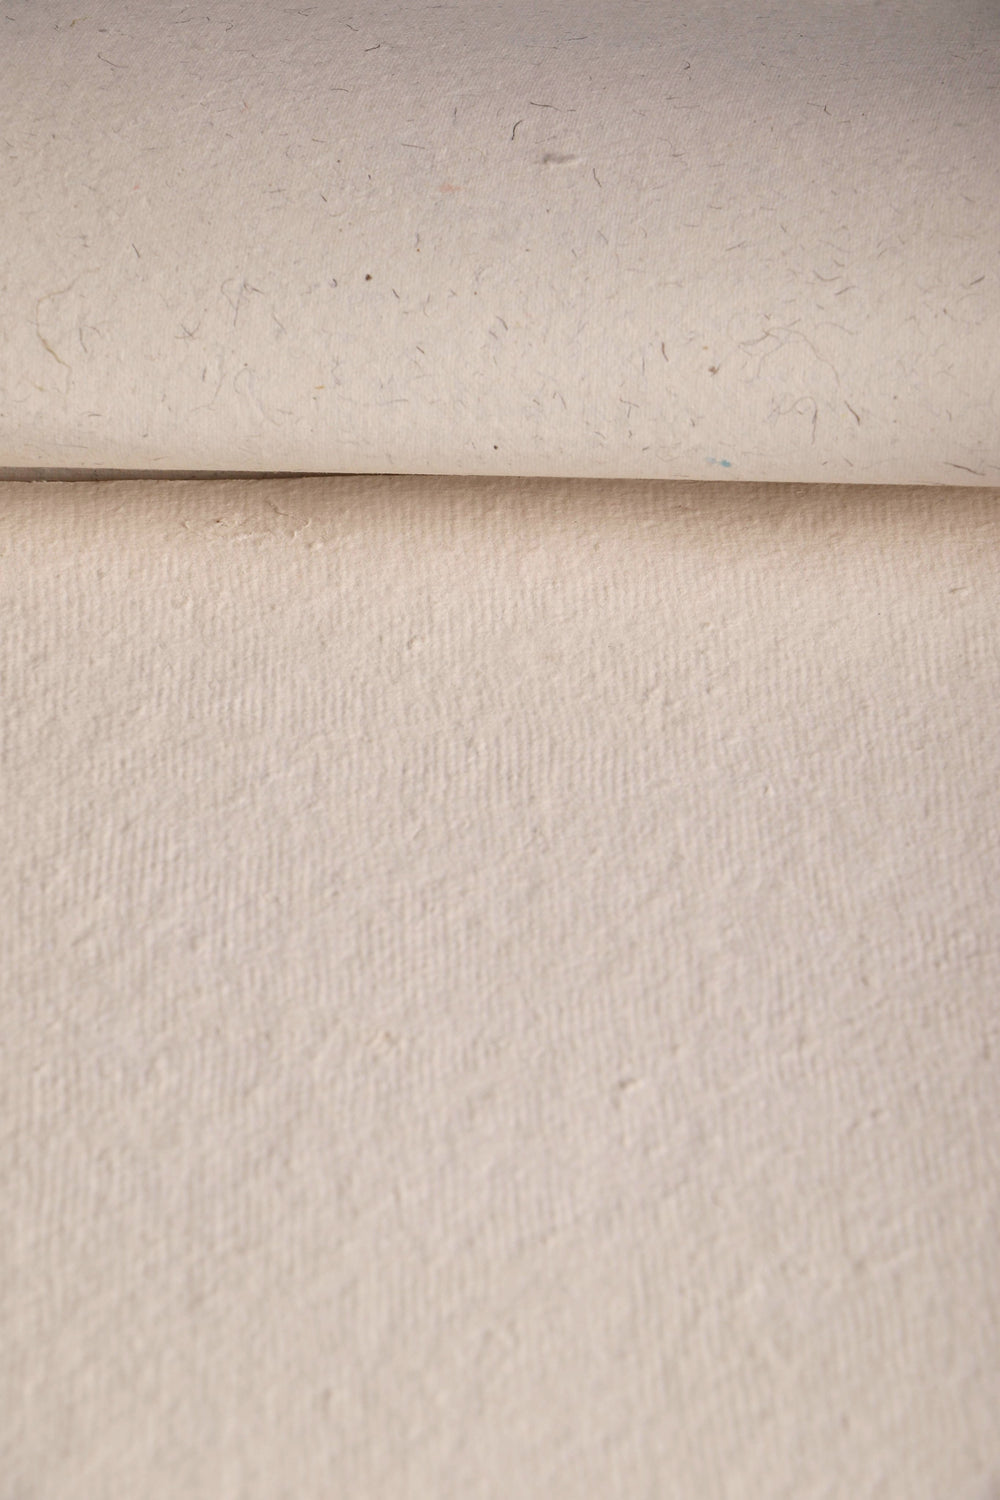 Acid free cotton paper